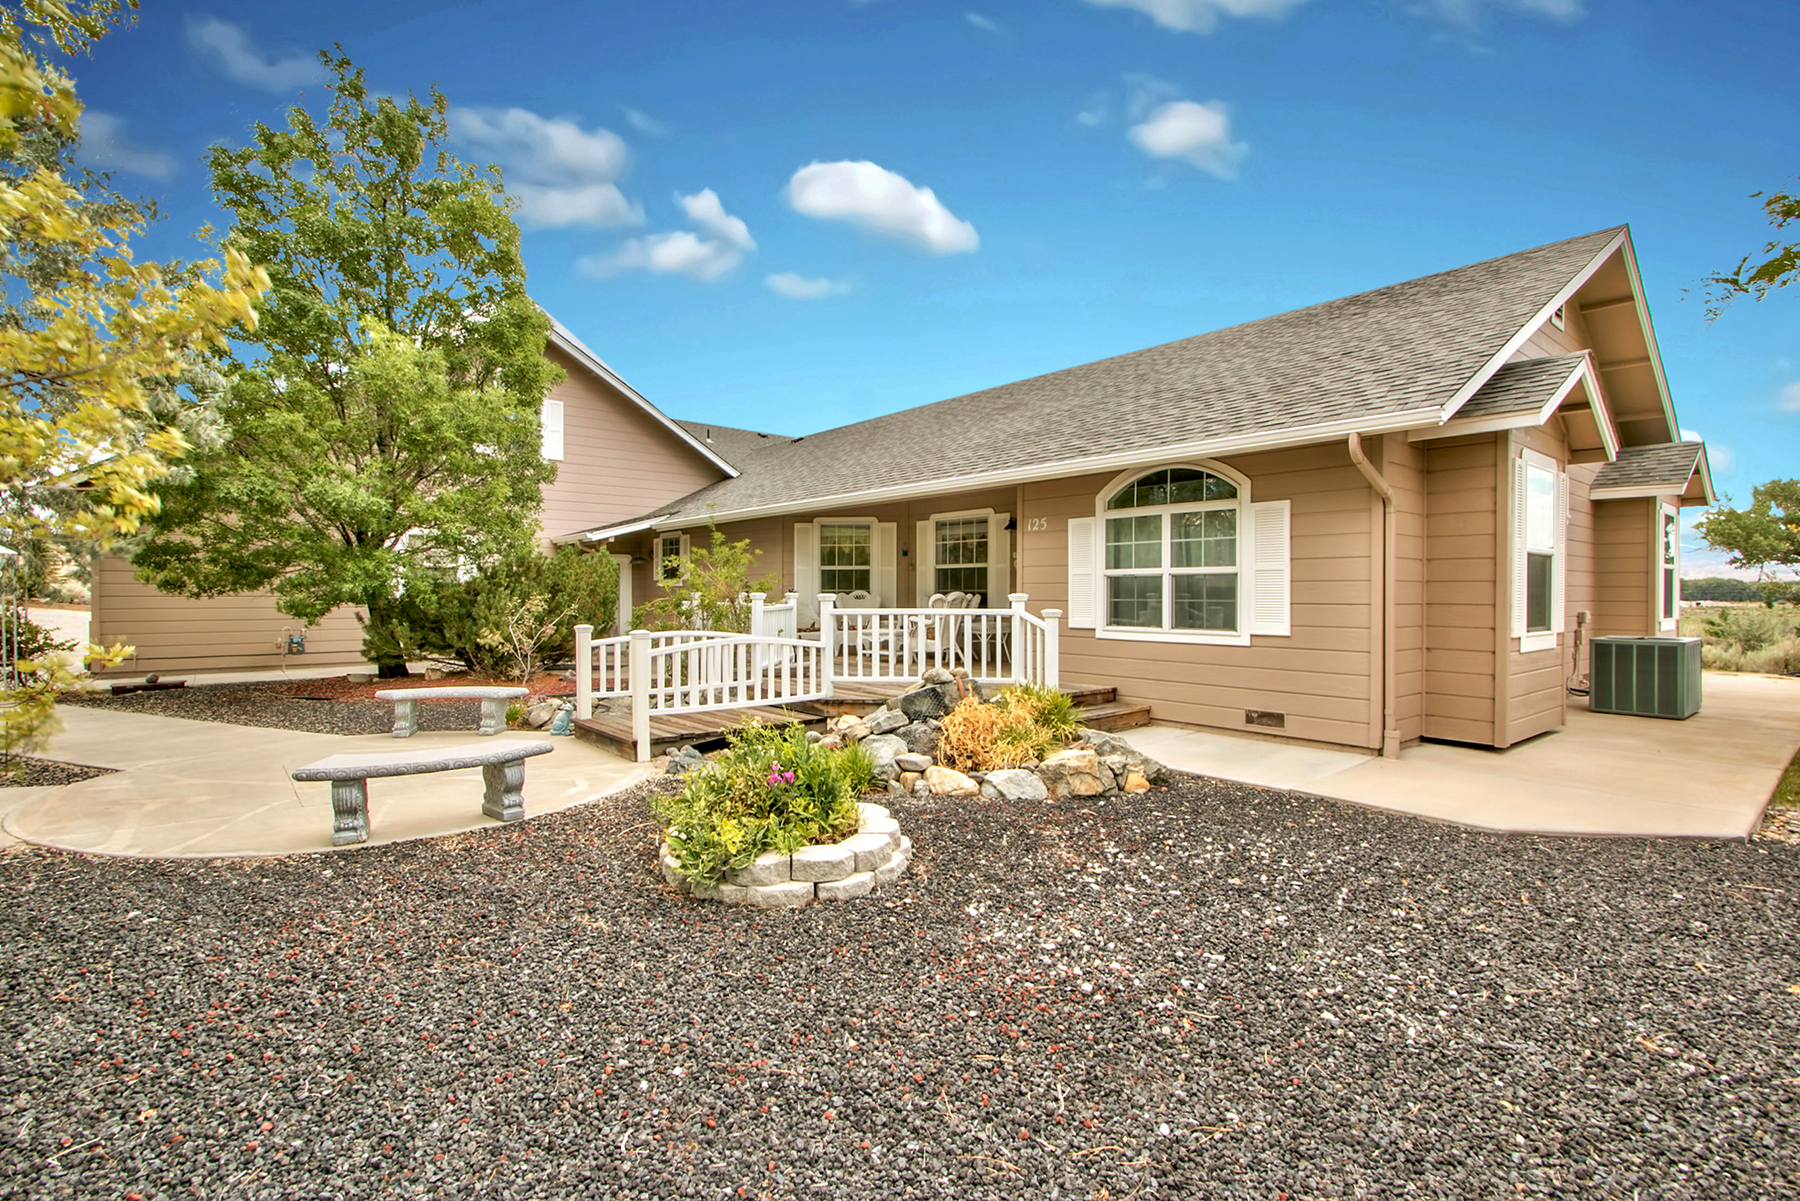 Single Family Home for Active at 125 River Road Dayton, Nevada 89403 United States